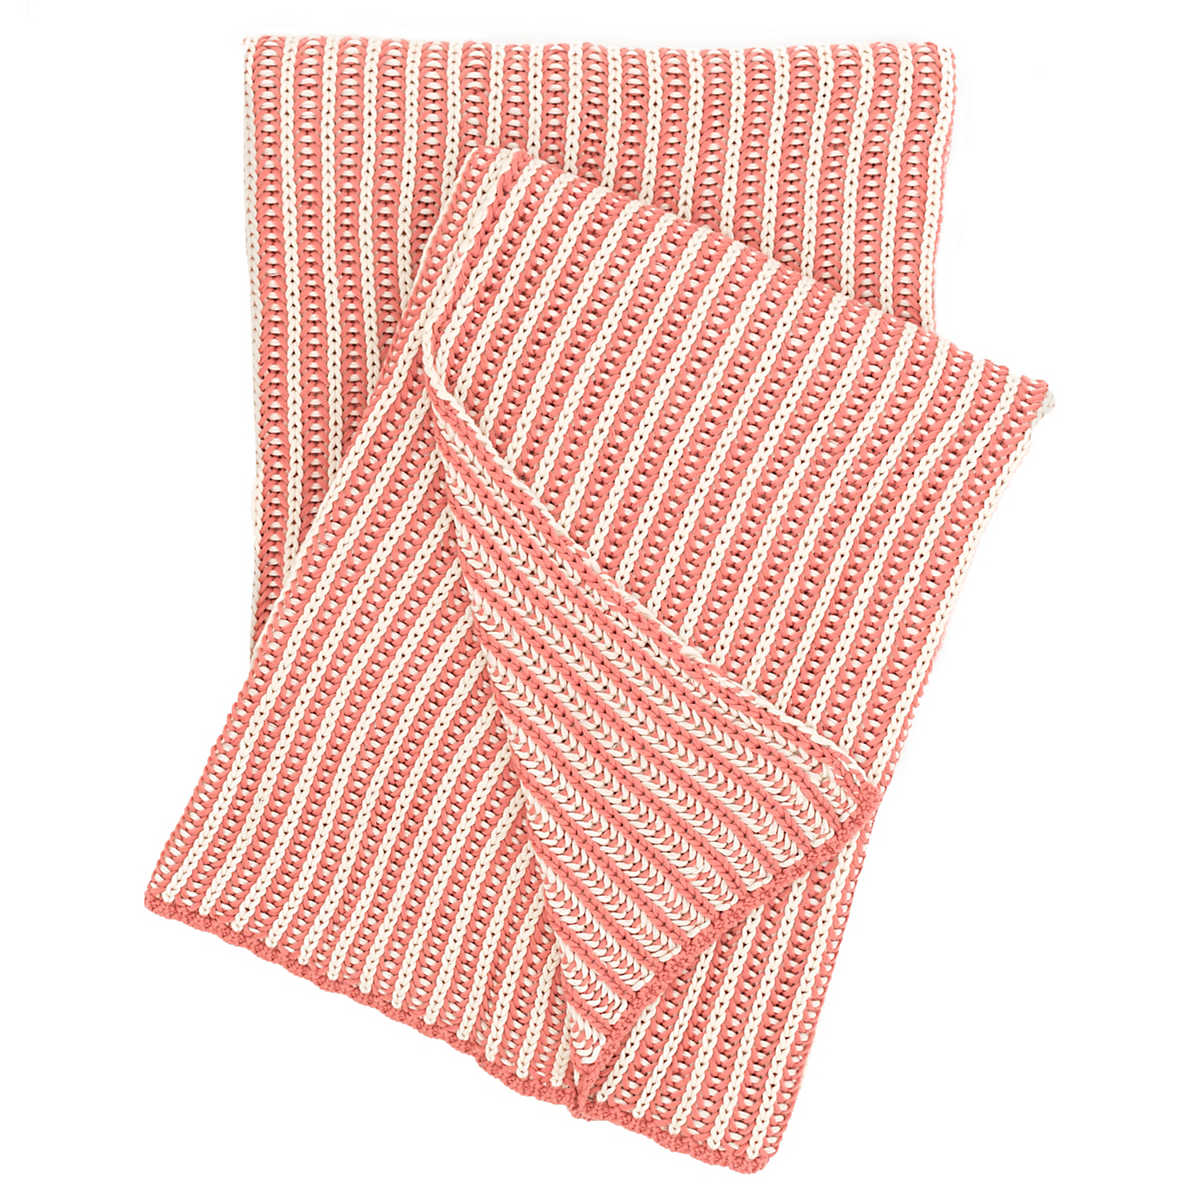 Cozy Knit Coral Throw The Outlet